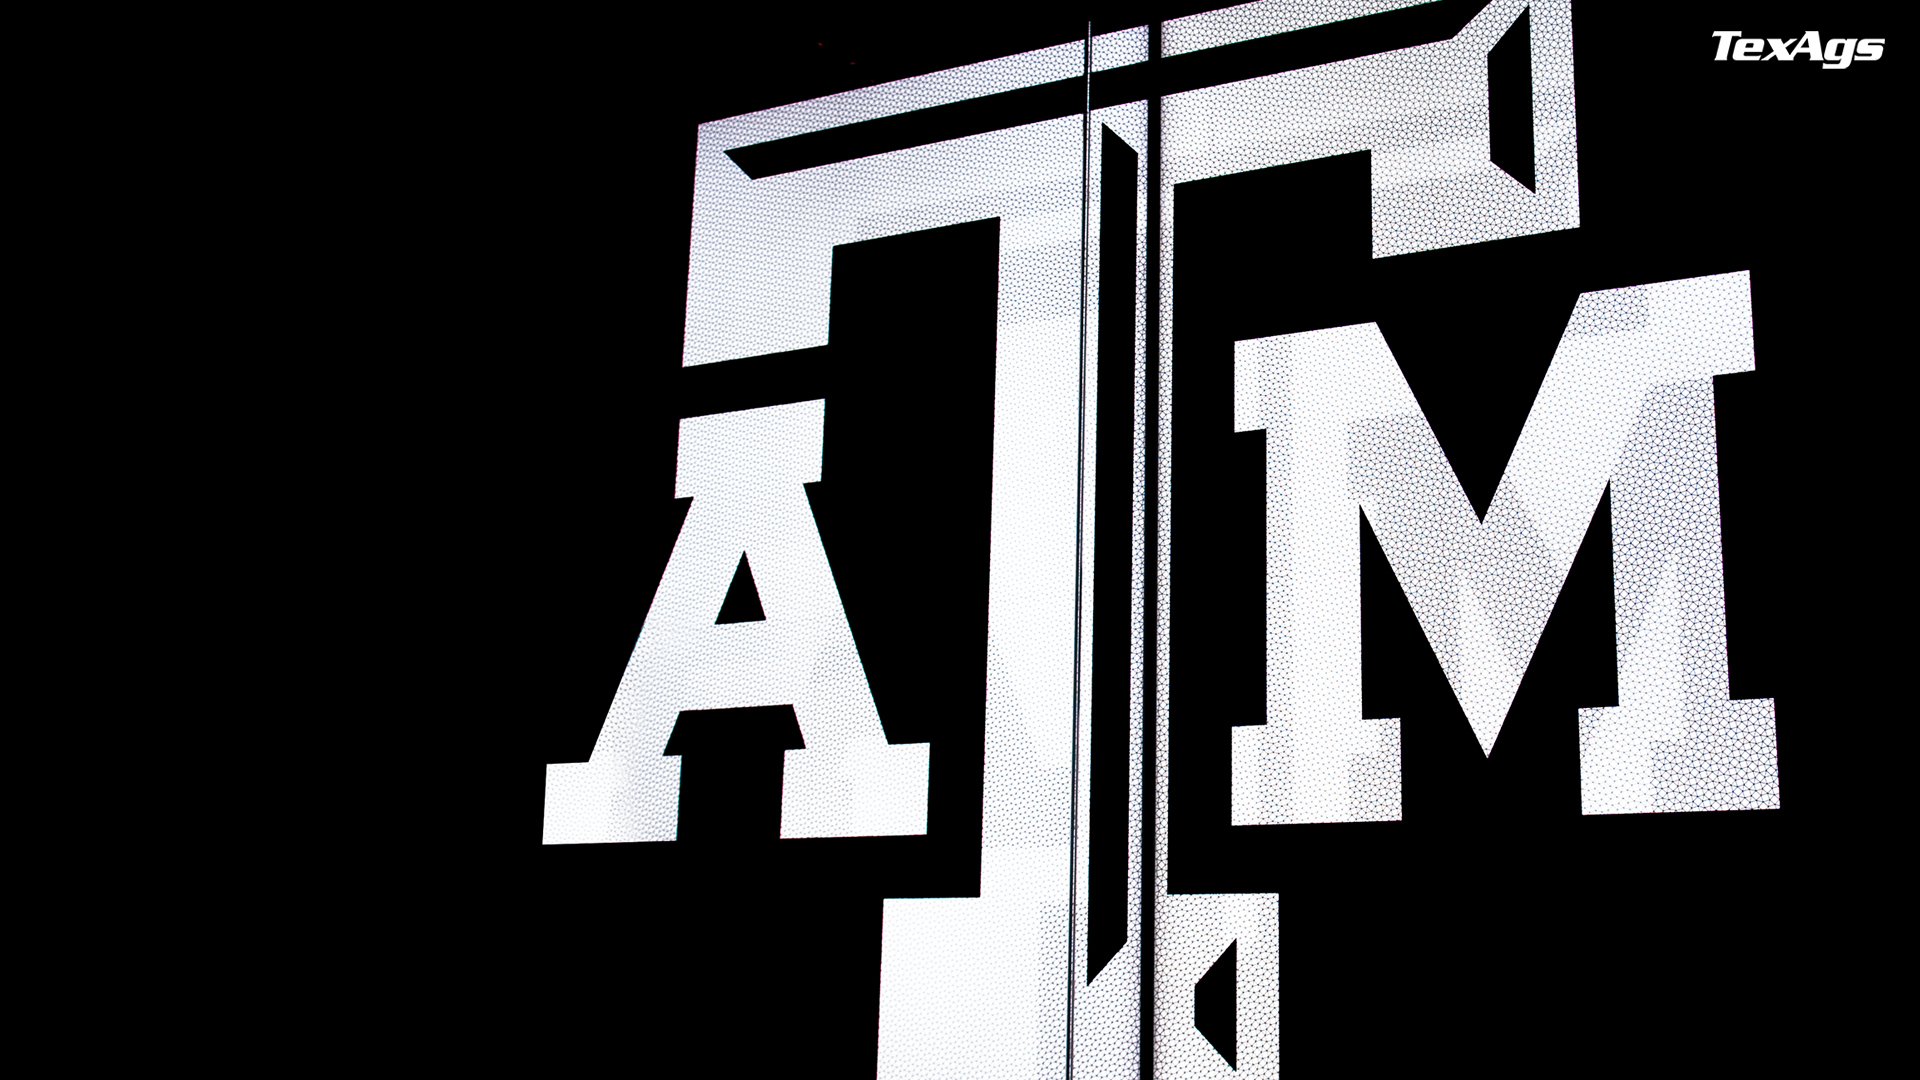 Texas Atm Wallpaper